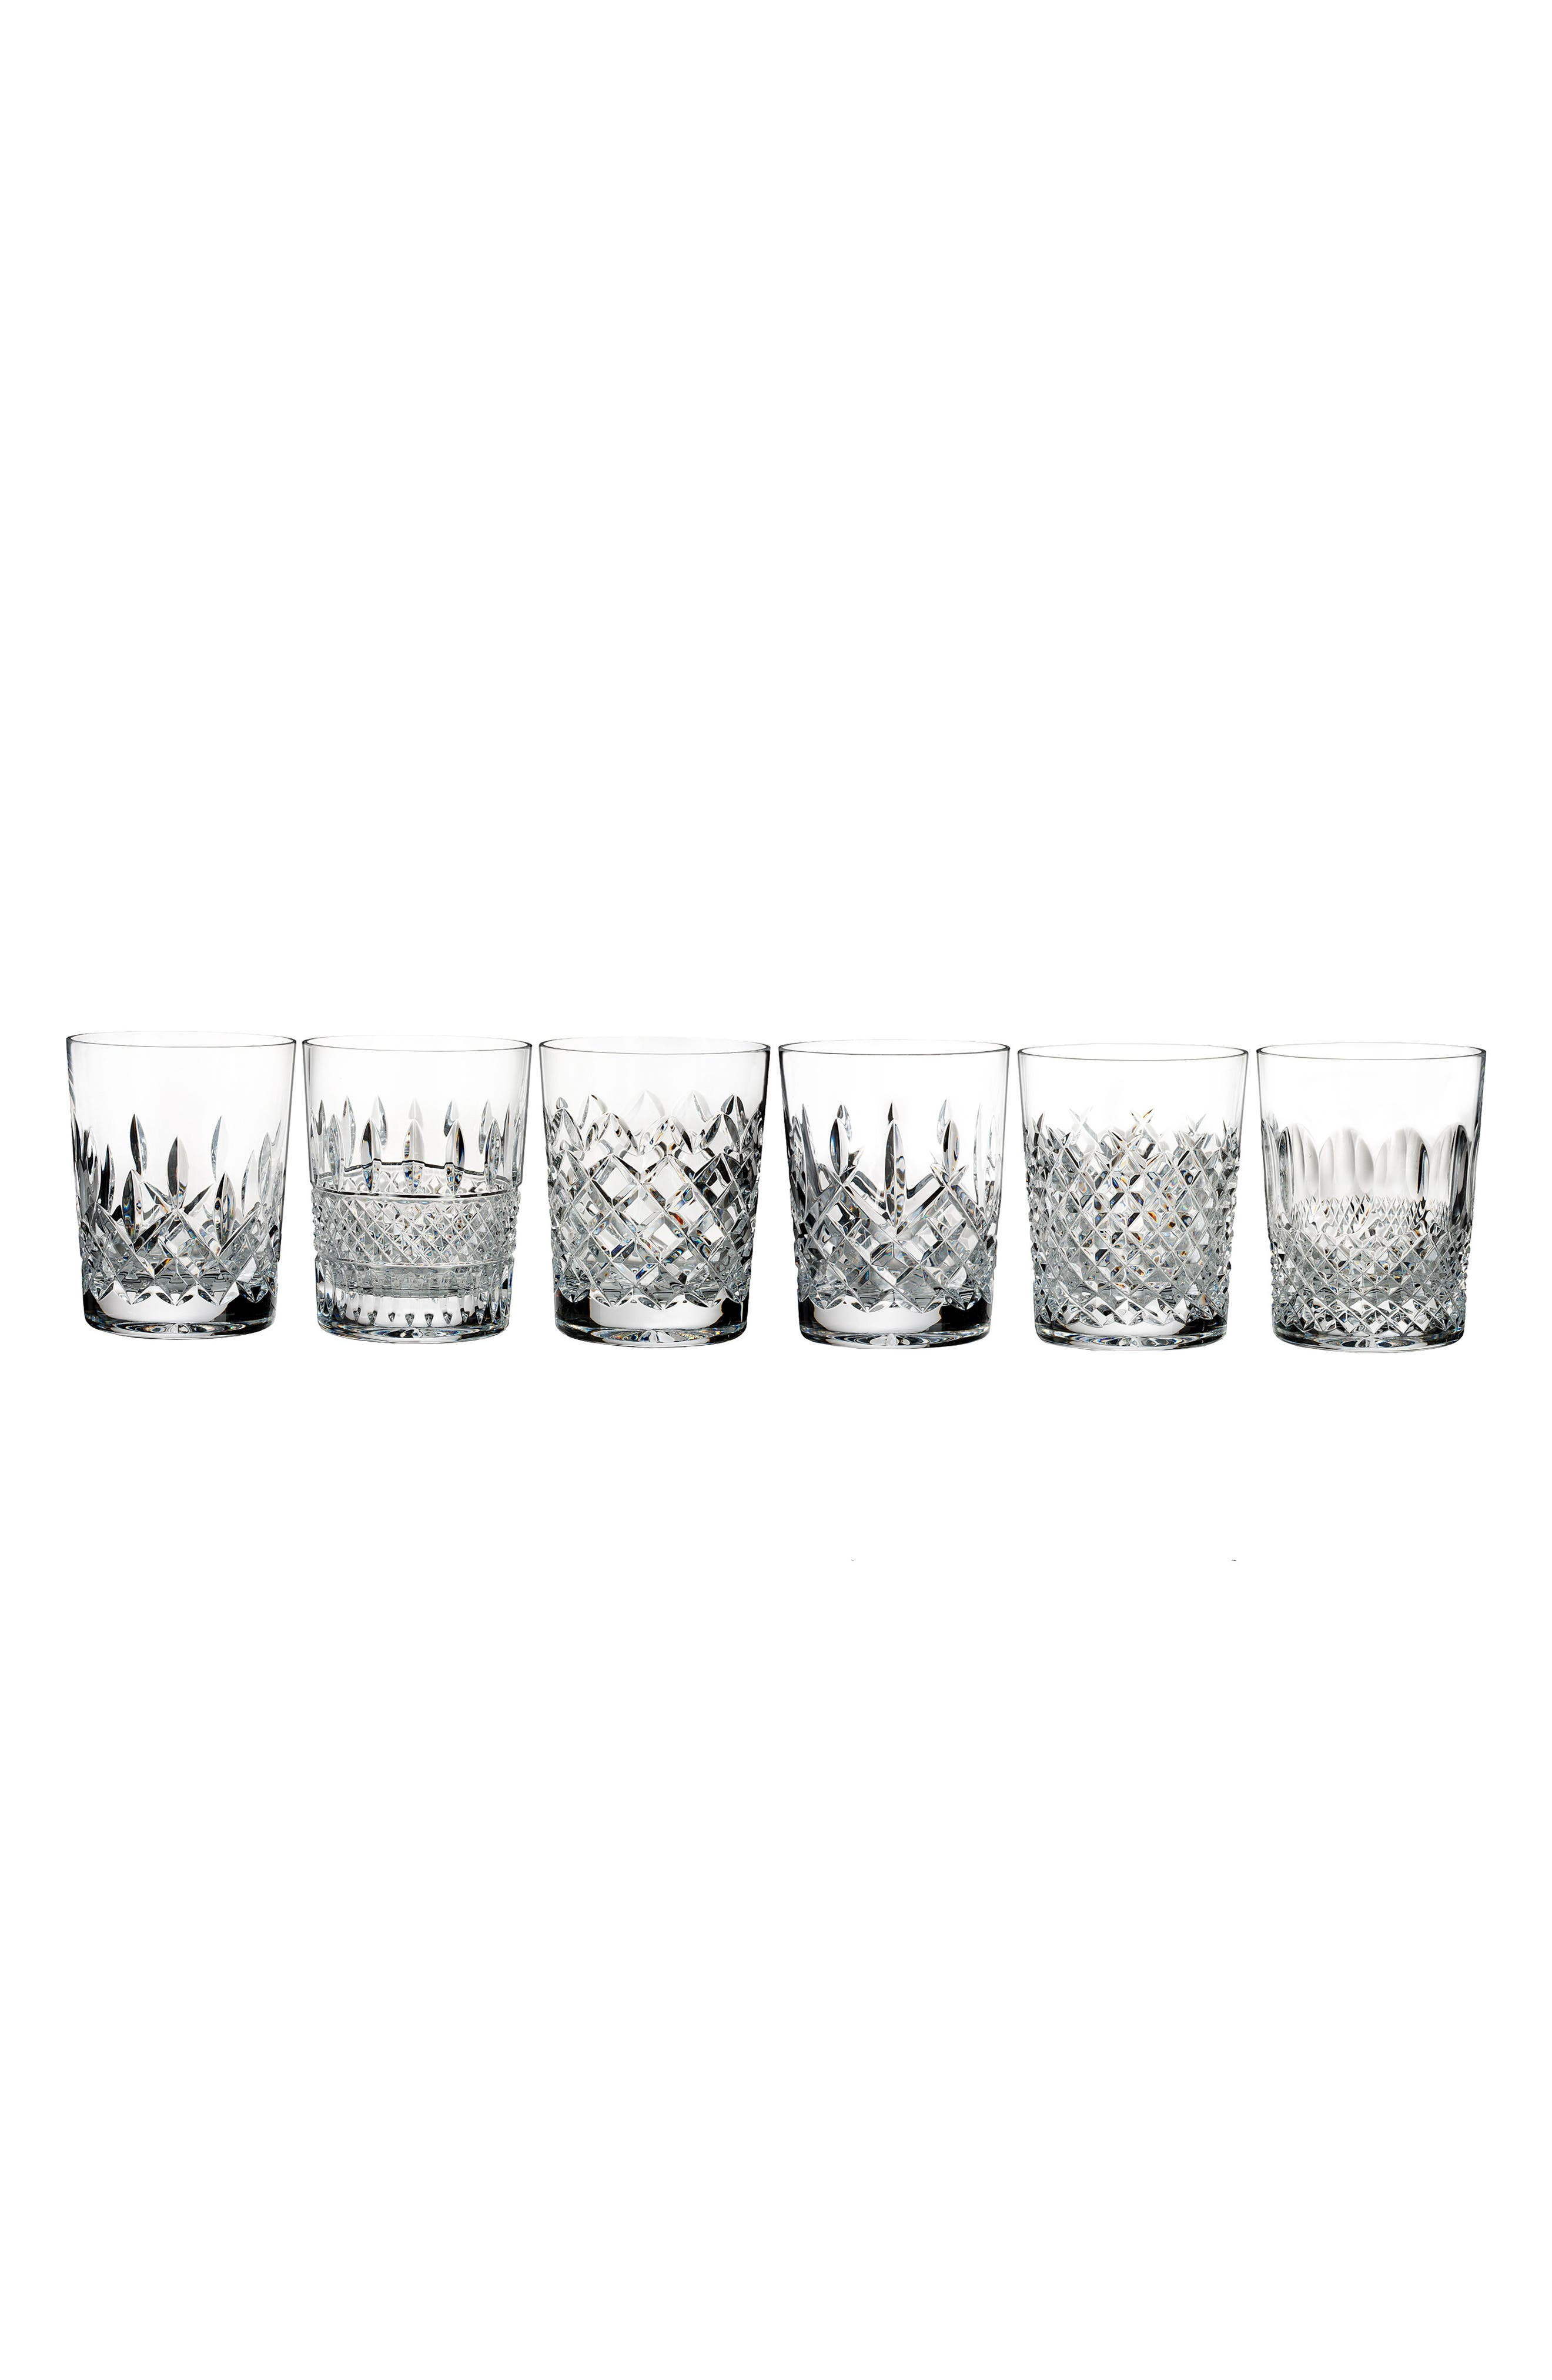 Alternate Image 1 Selected - Waterford Connoisseur Set of 6 Lead Crystal Double Old Fashioned Glasses